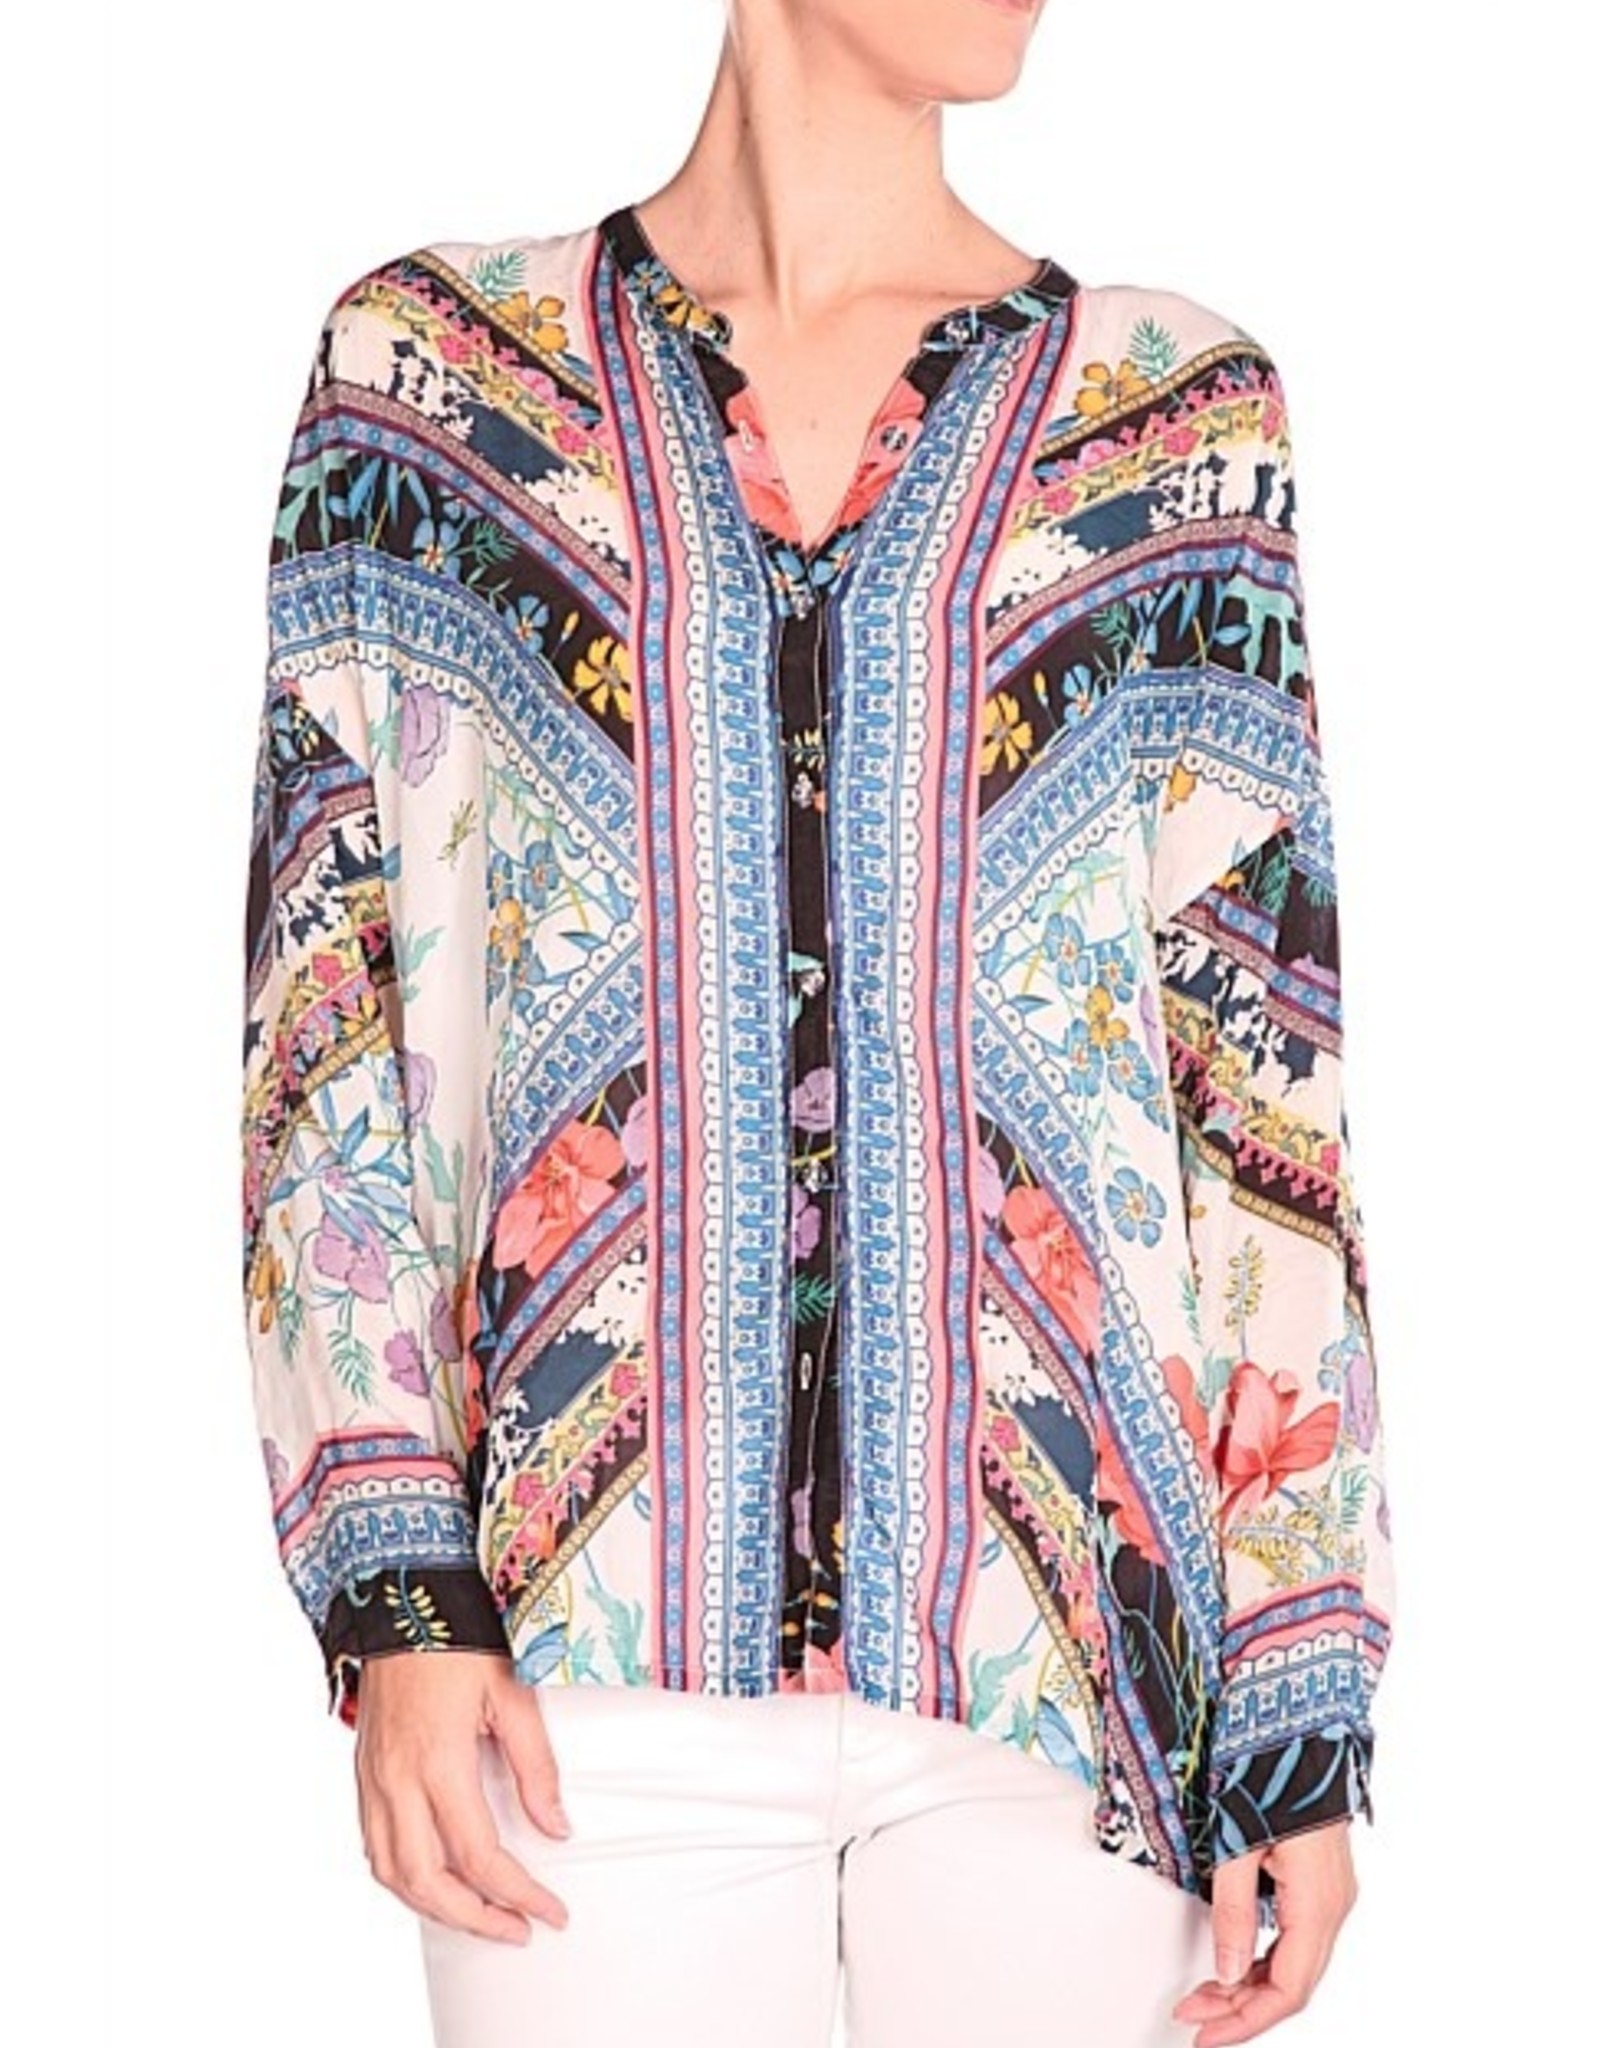 SALE - JOHNNY WAS INVO BLOUSE